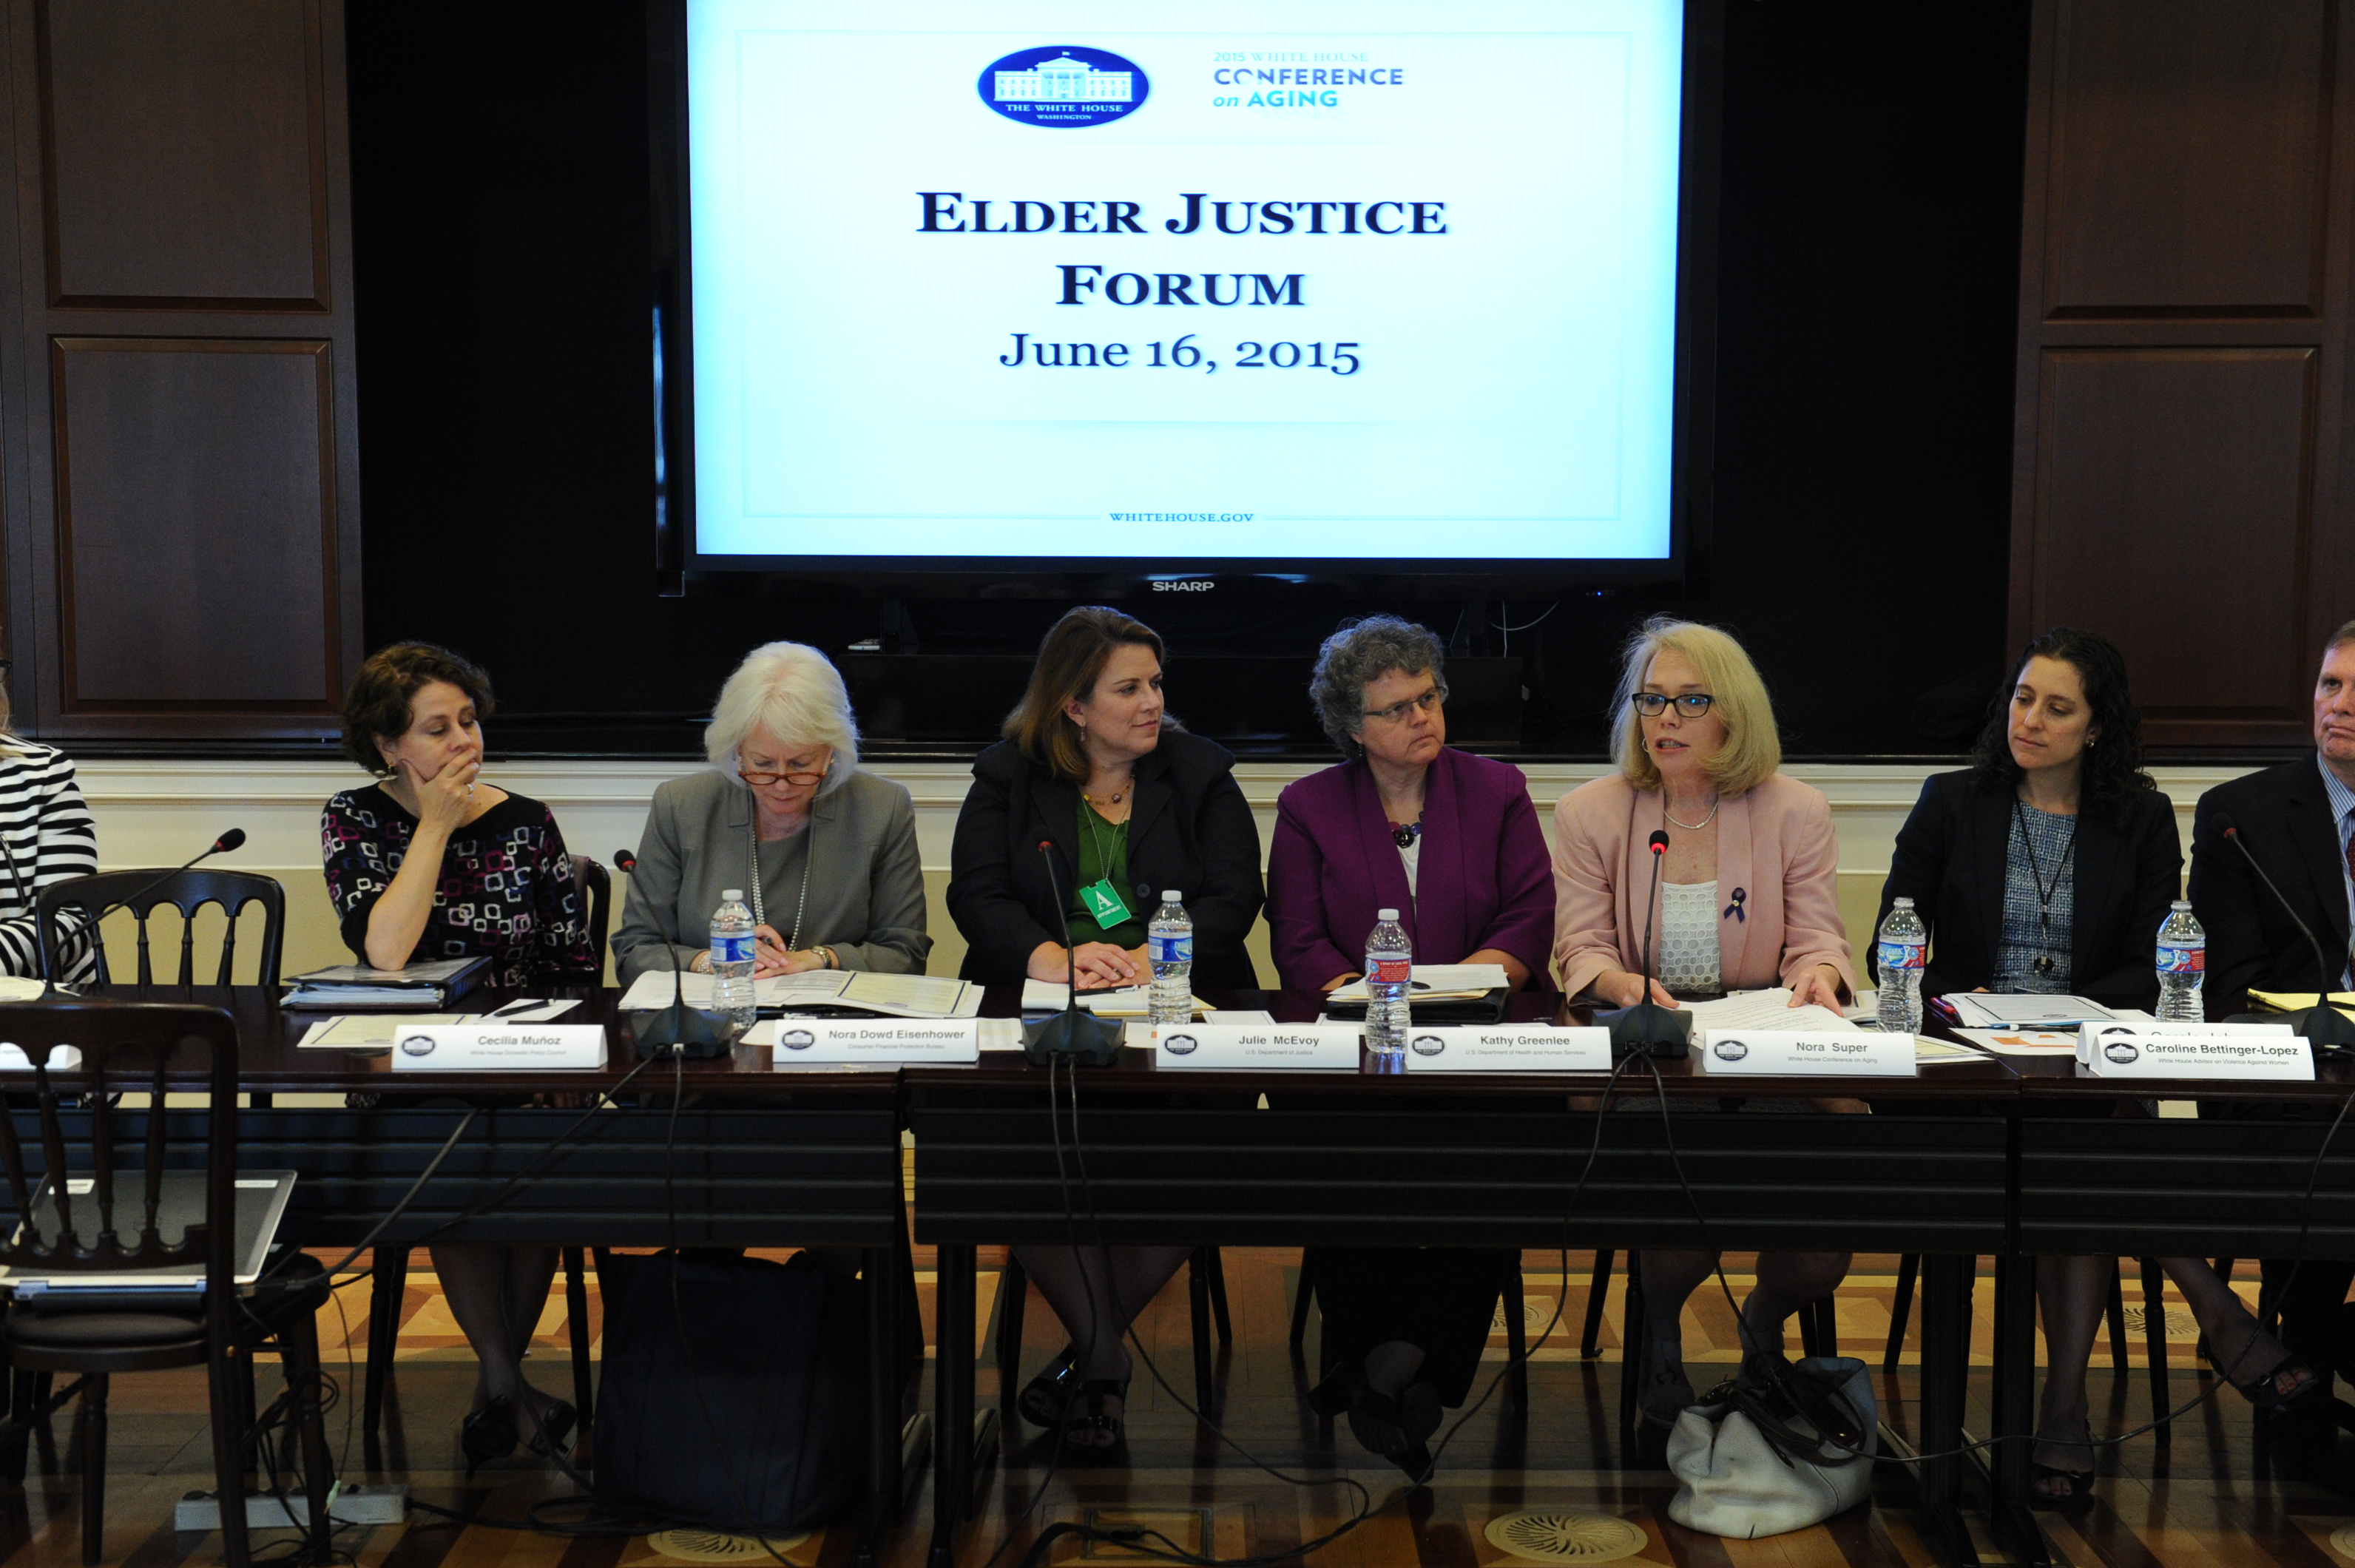 Panel for the Elder Justice Forum at the White House